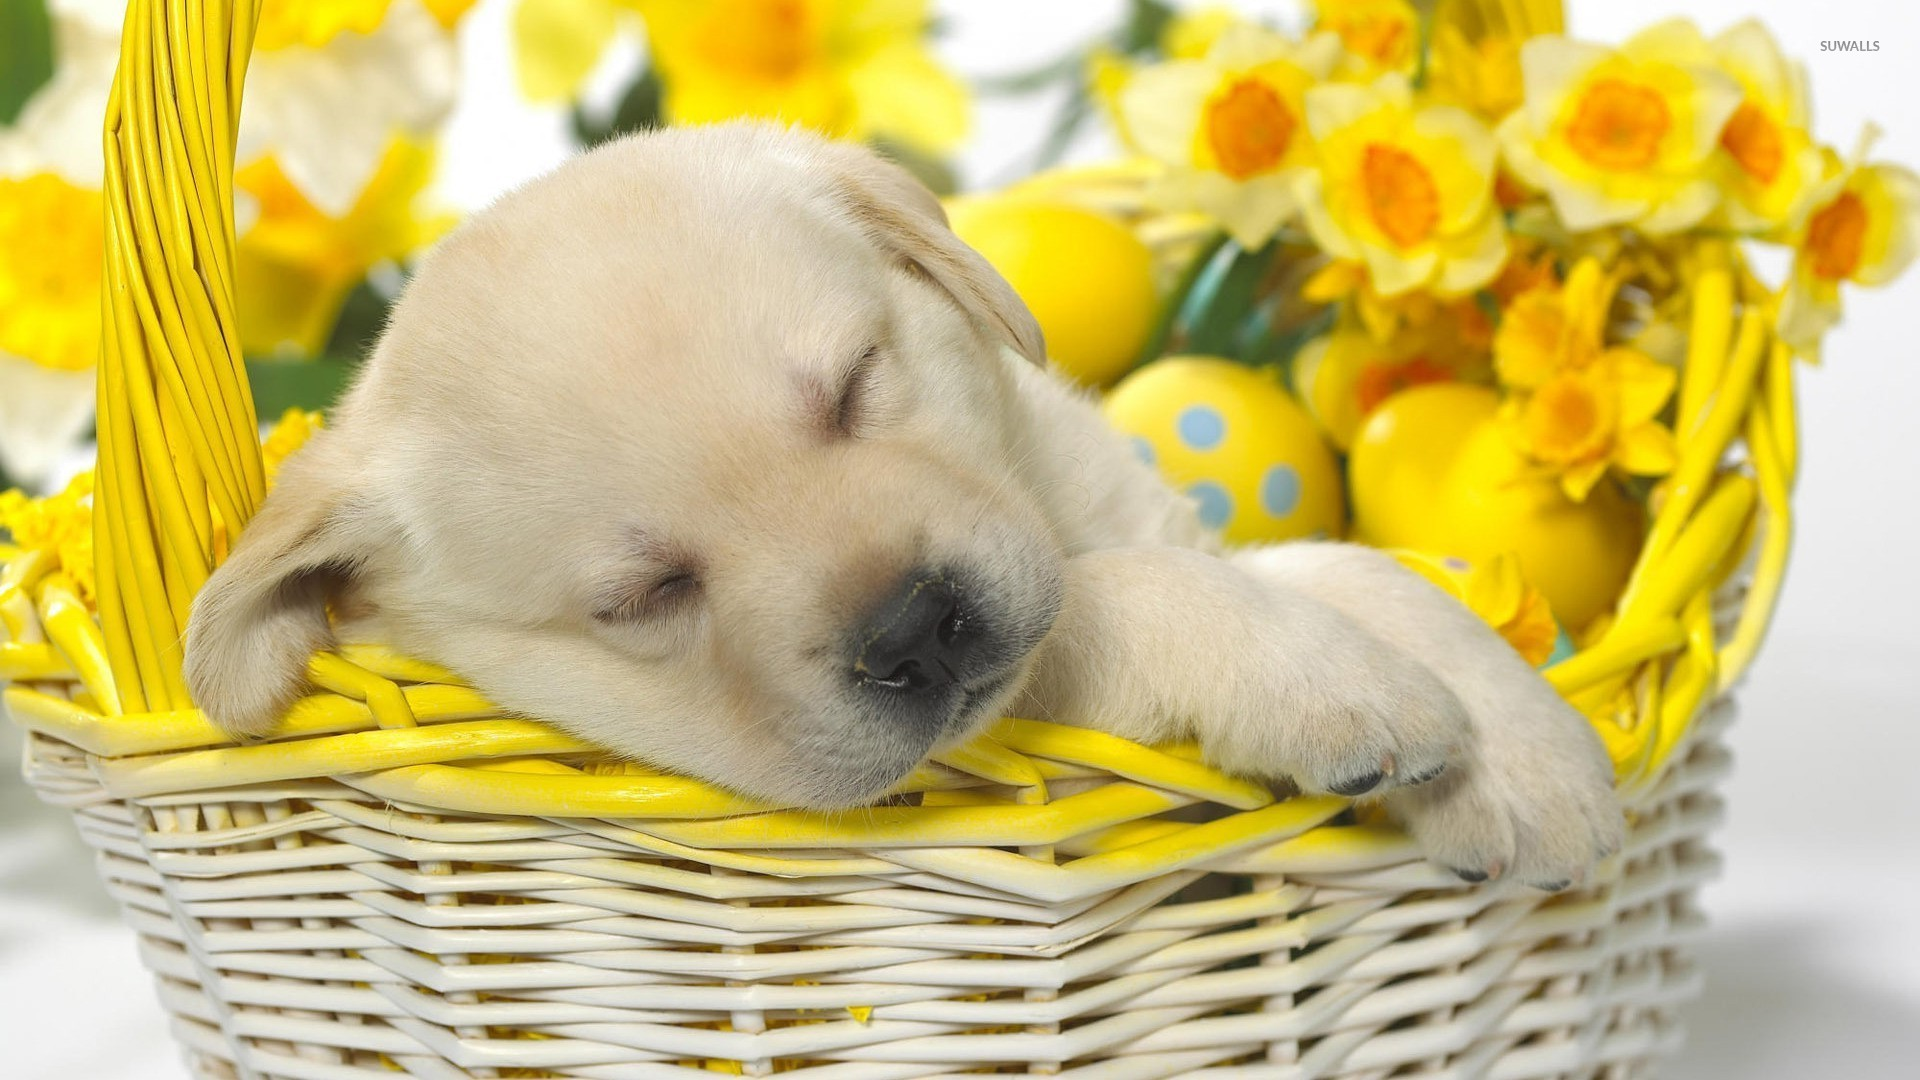 Cute Puppies Images Sleeping Golden Retriever HD Wallpaper And Background Photos